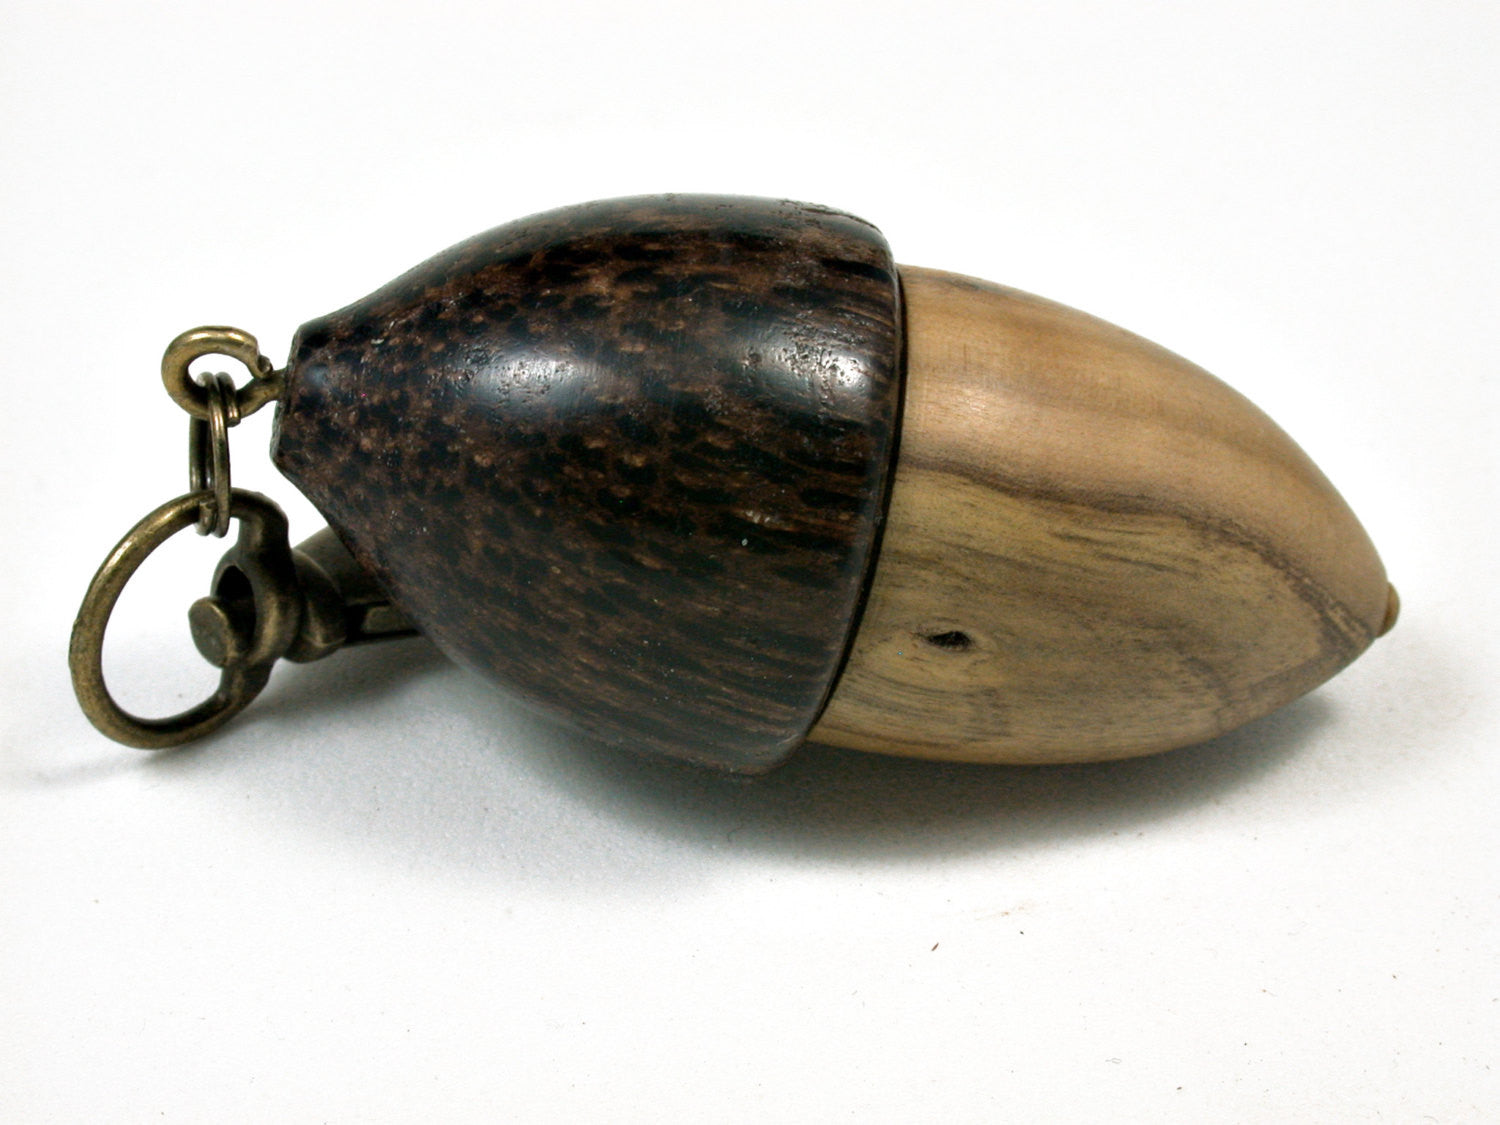 LV-1875 Creosote & Black Palm Acorn Pendant Charm, Pill Holder, Cash Stash-SCREW CAP